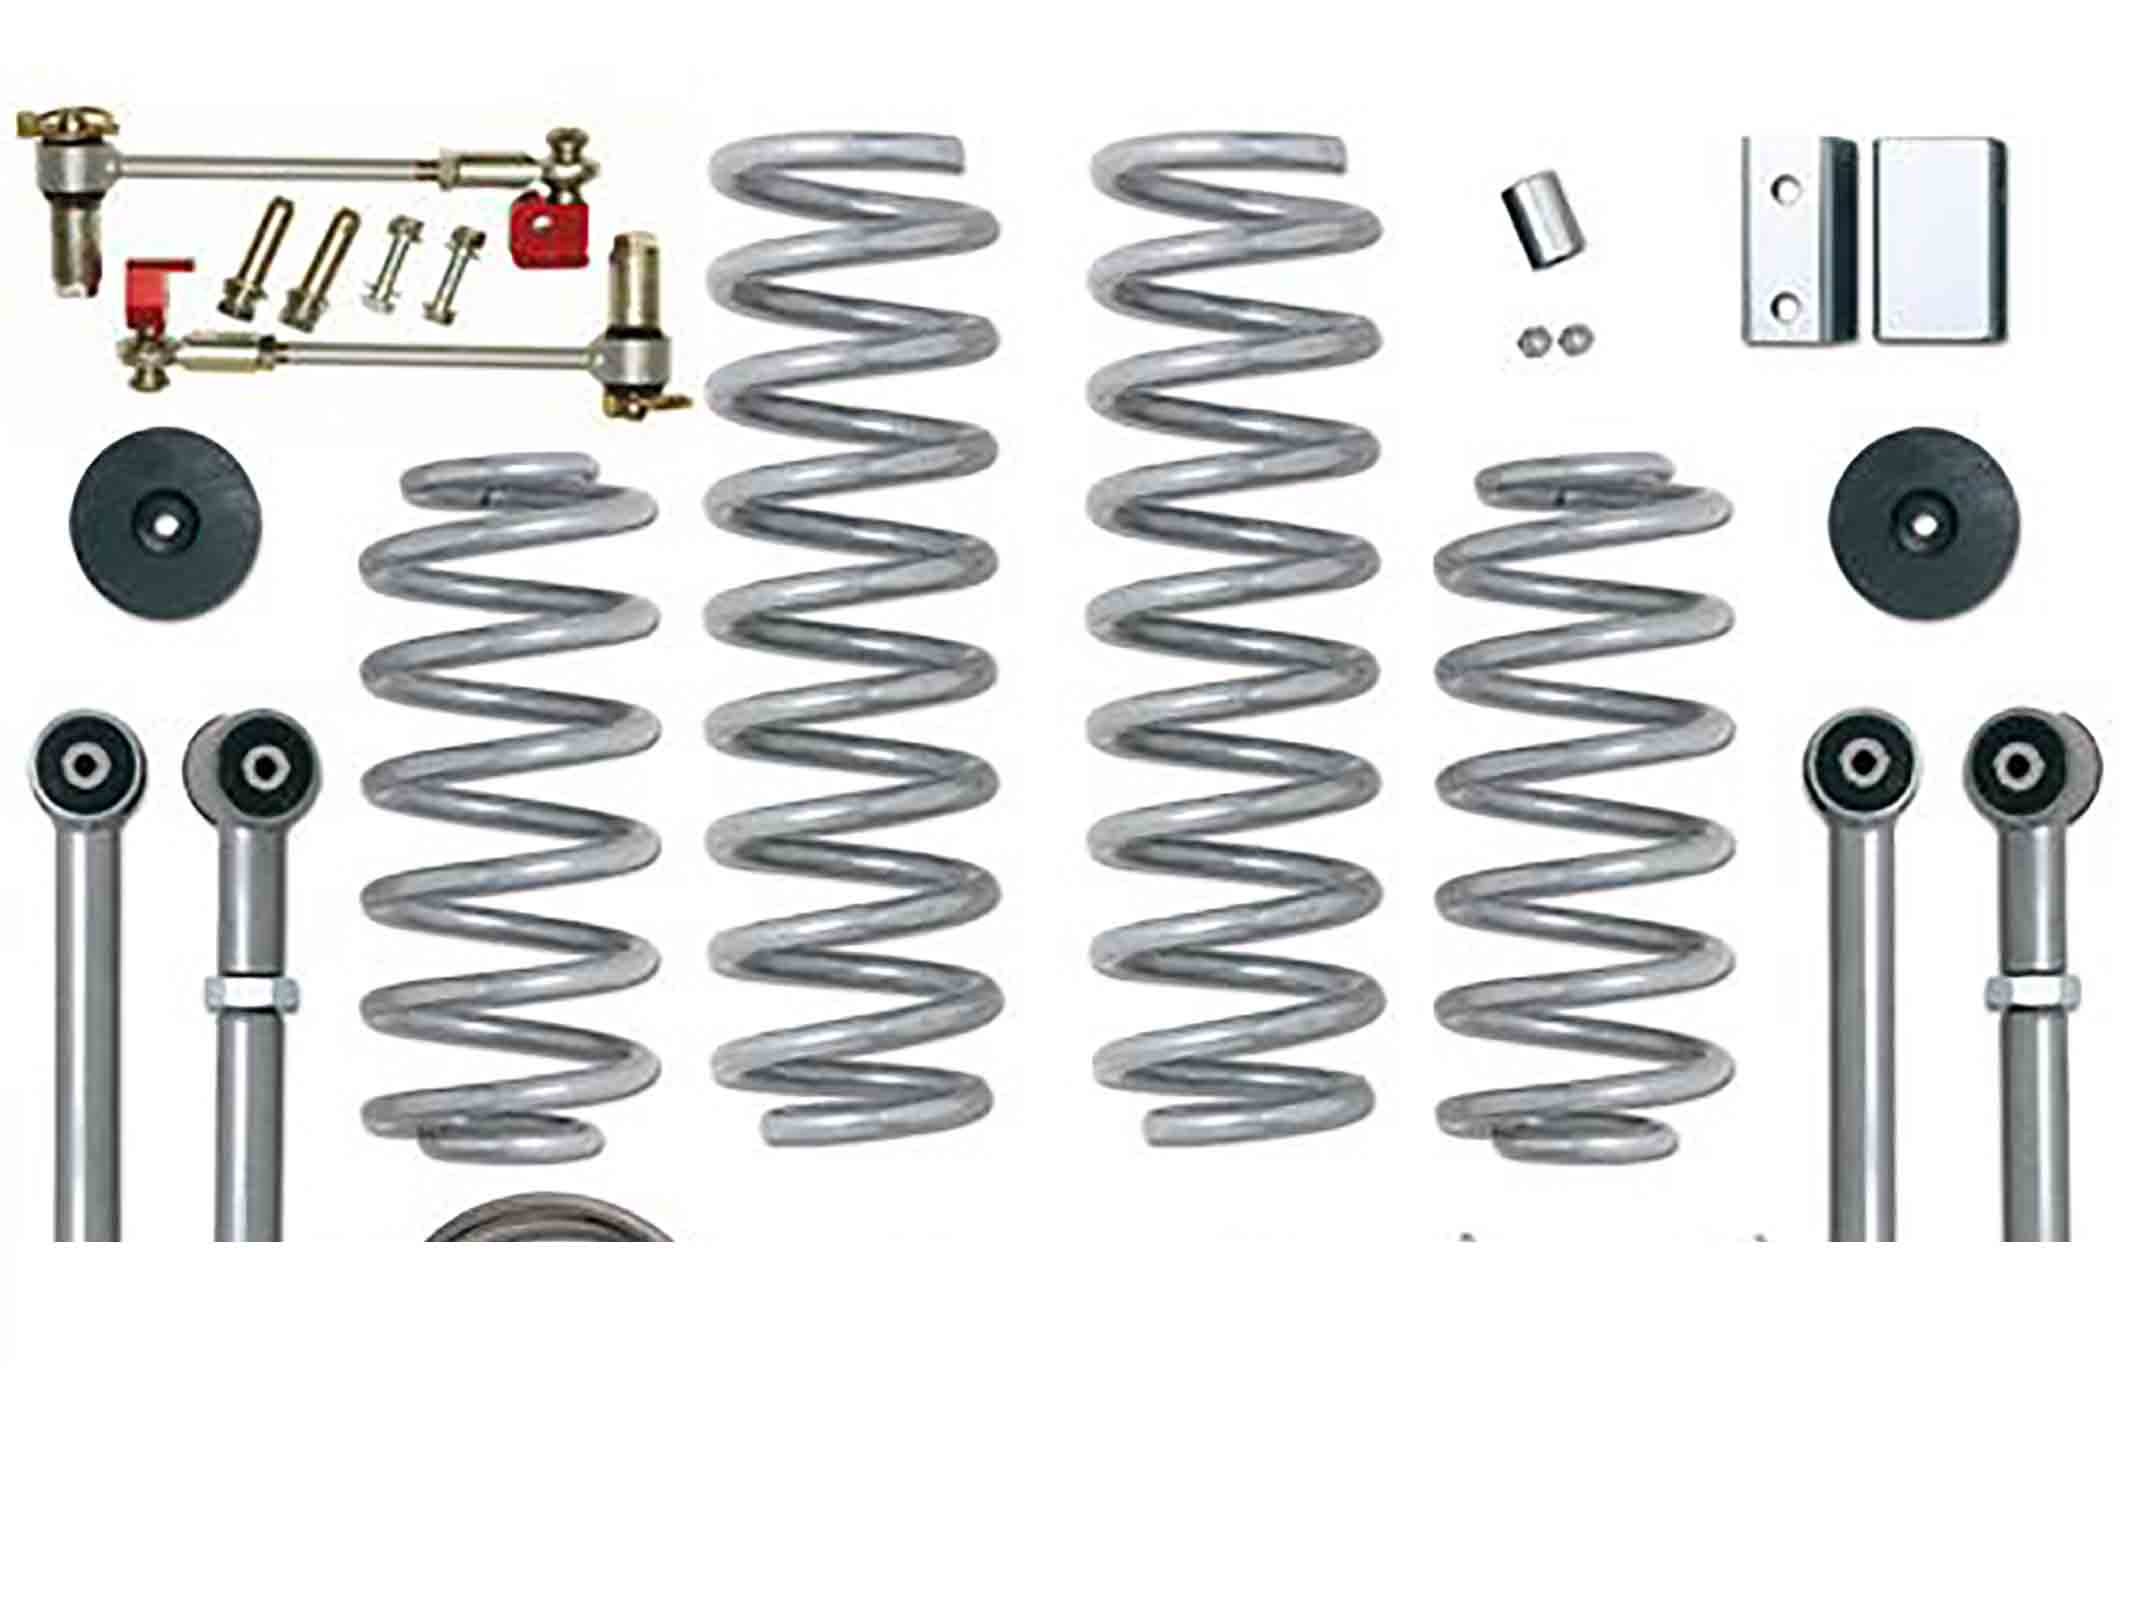 Super flex short arm kit grand cherokee zj zg 92 98  + 3,5 = 90mm ricambi jeep